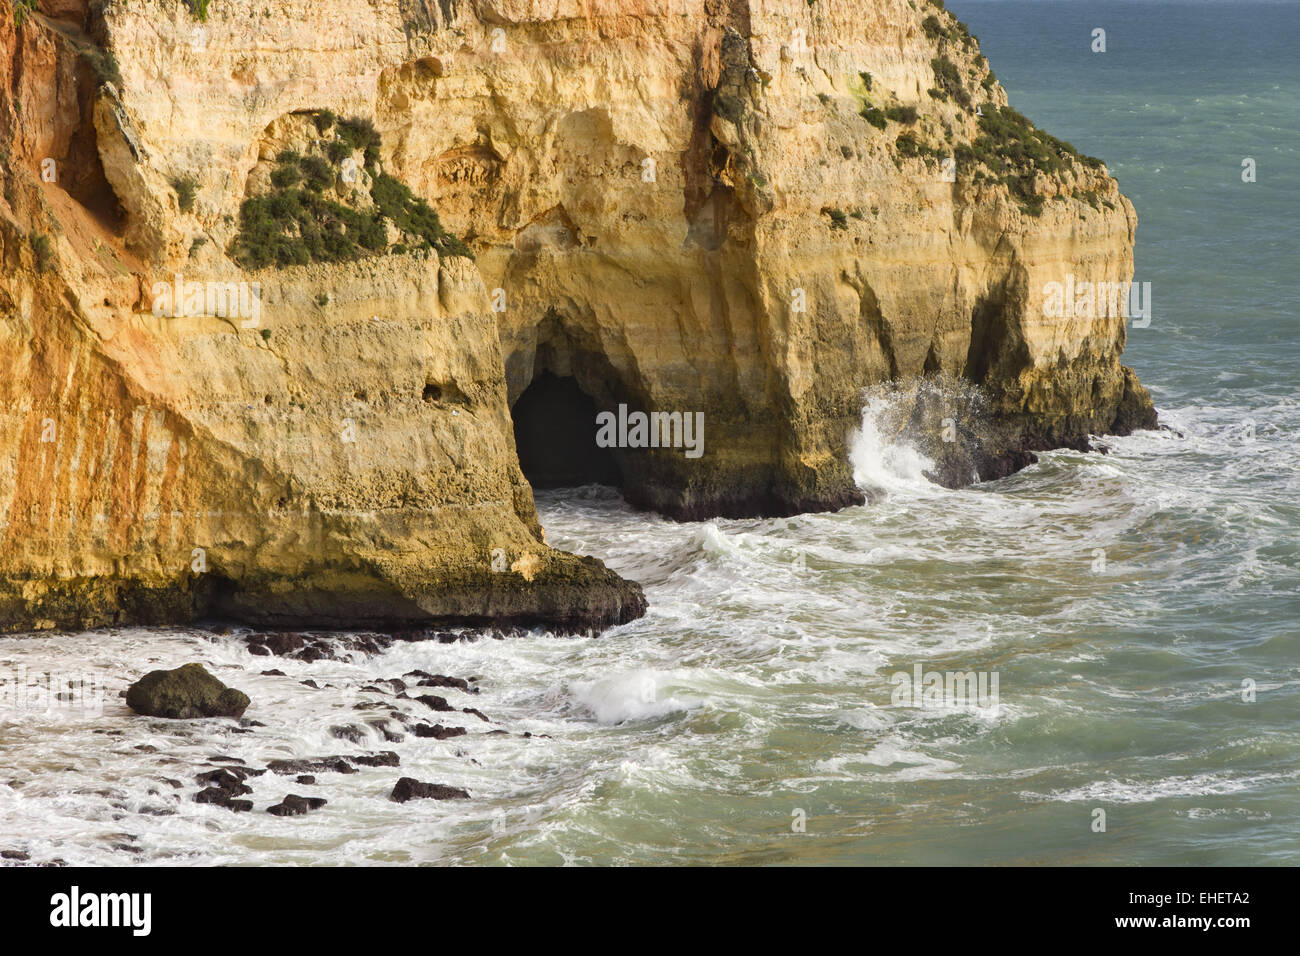 Coast with cave in Carvoeiro Stock Photo